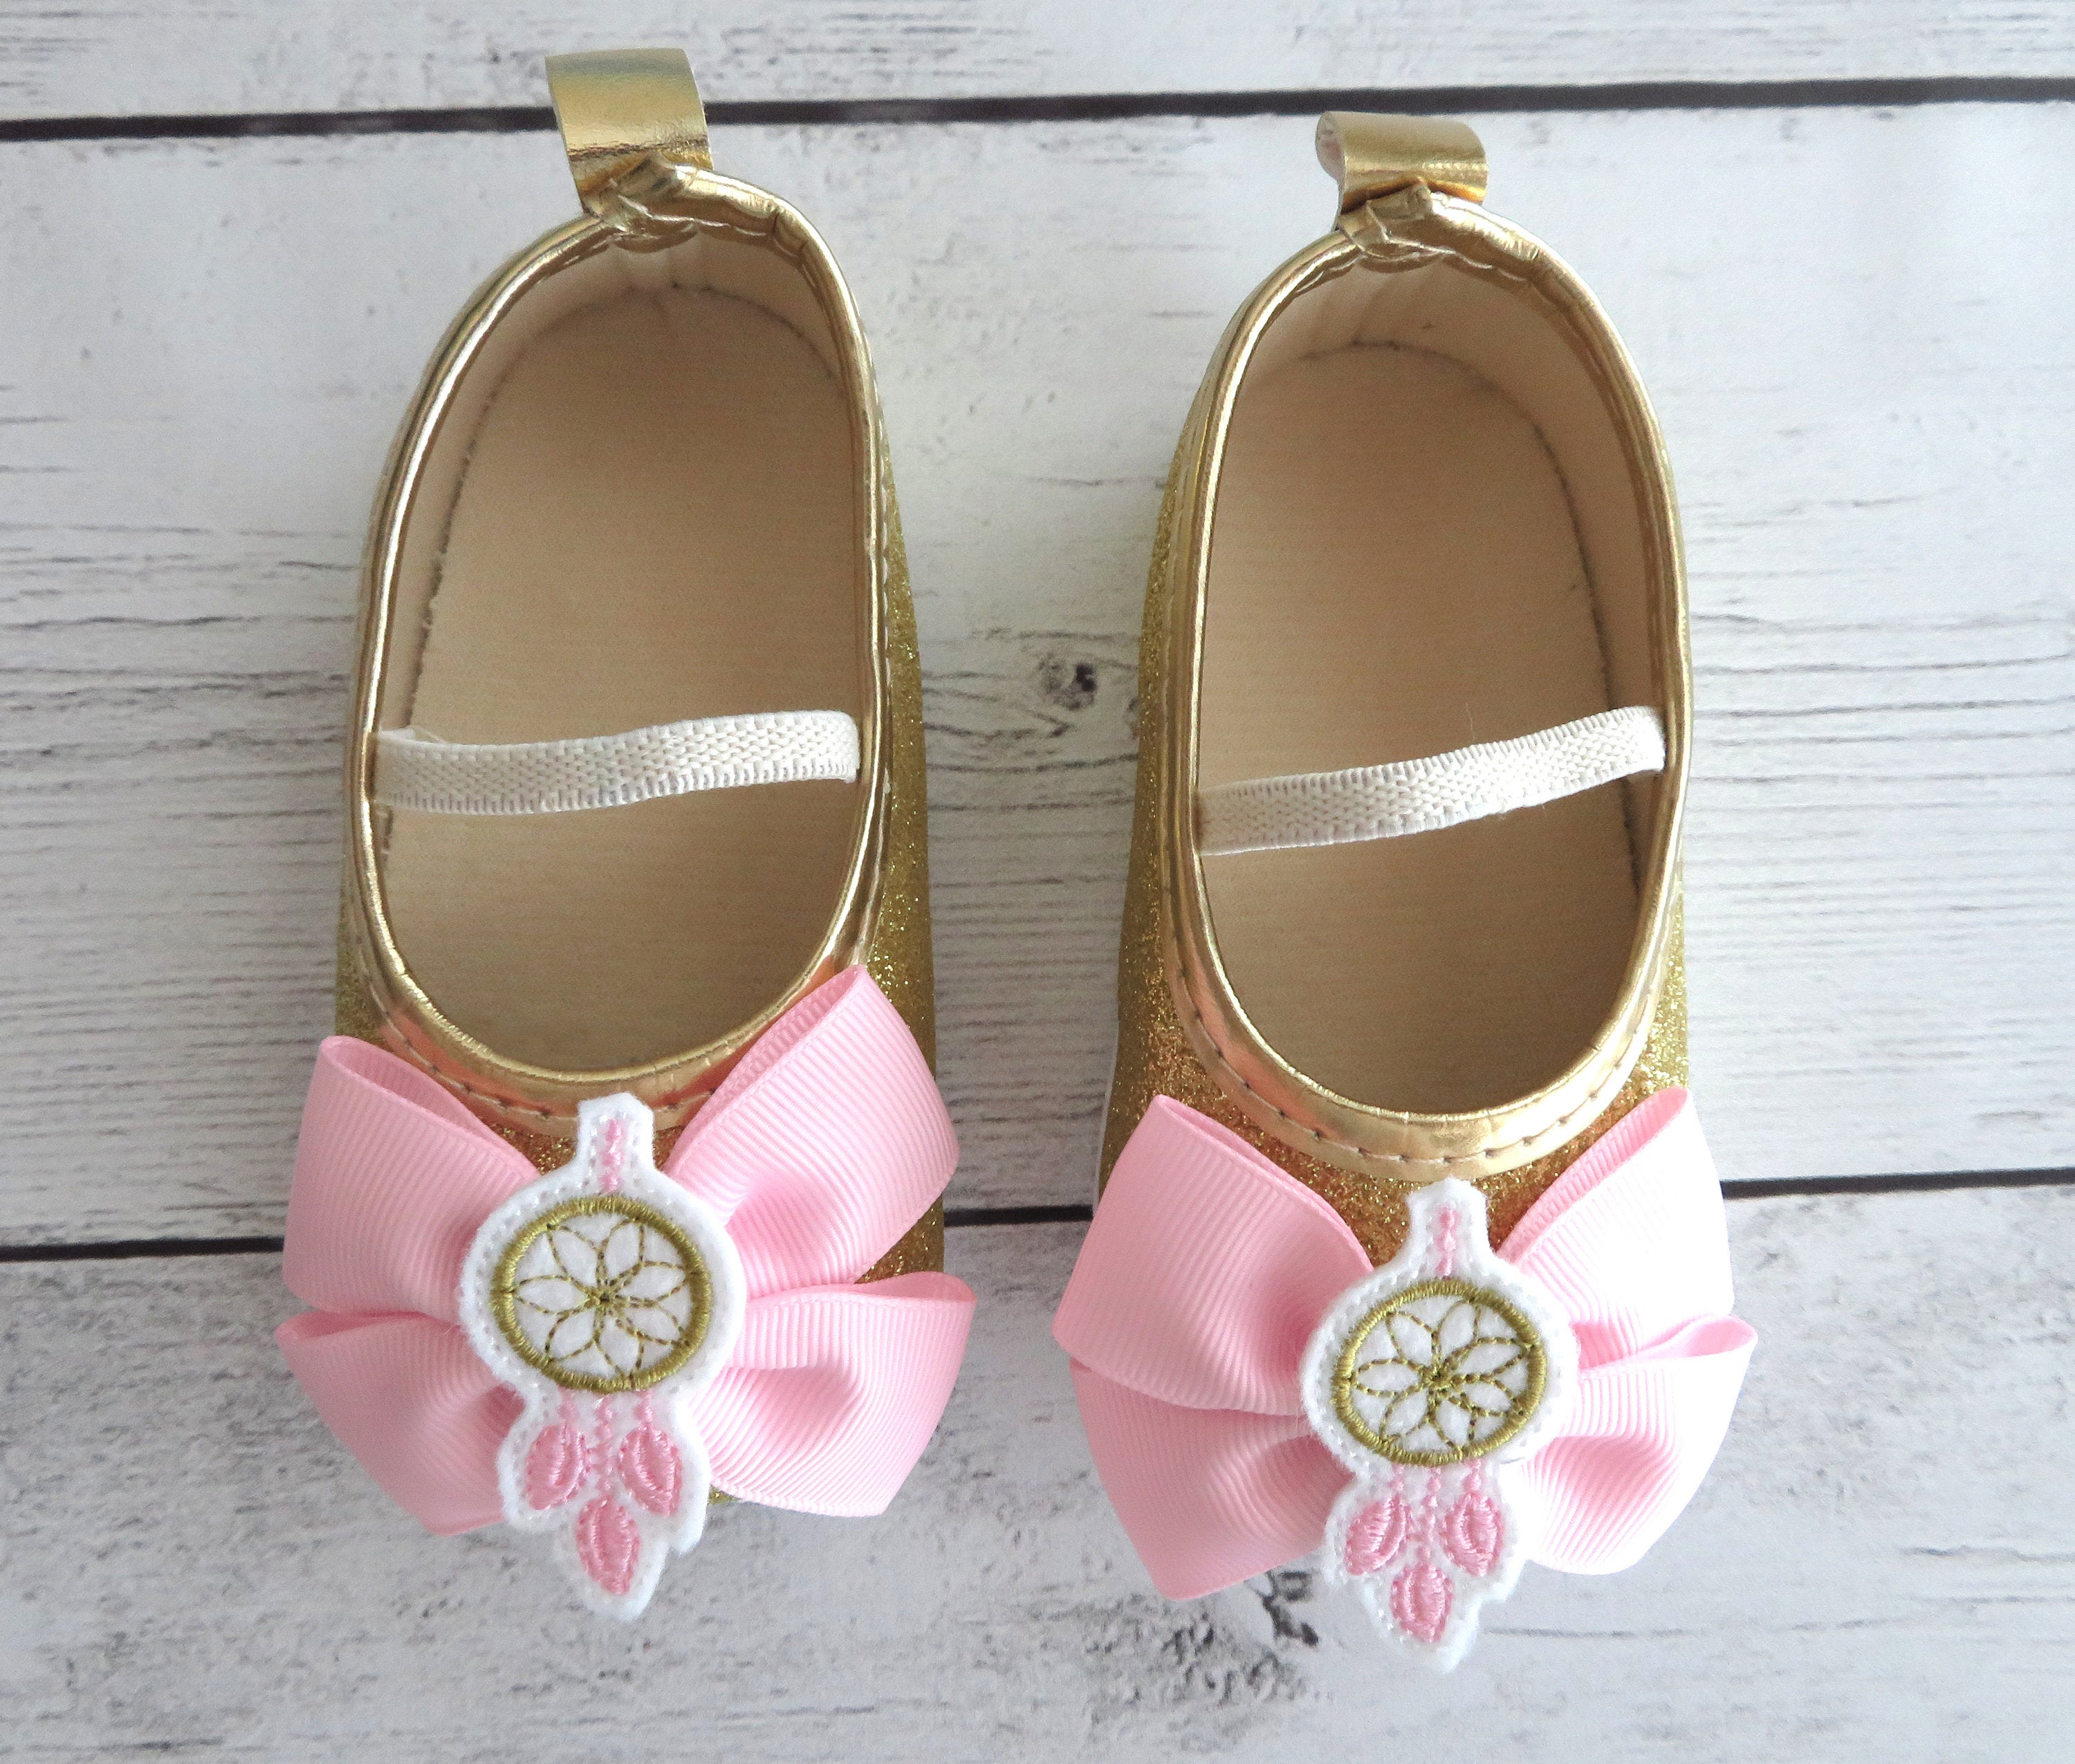 Wild One First Birthday Shoes in light pink and gold - dreamcatcher, wild one 1st birthday girl, wild one shoes, wild one birthday outfit